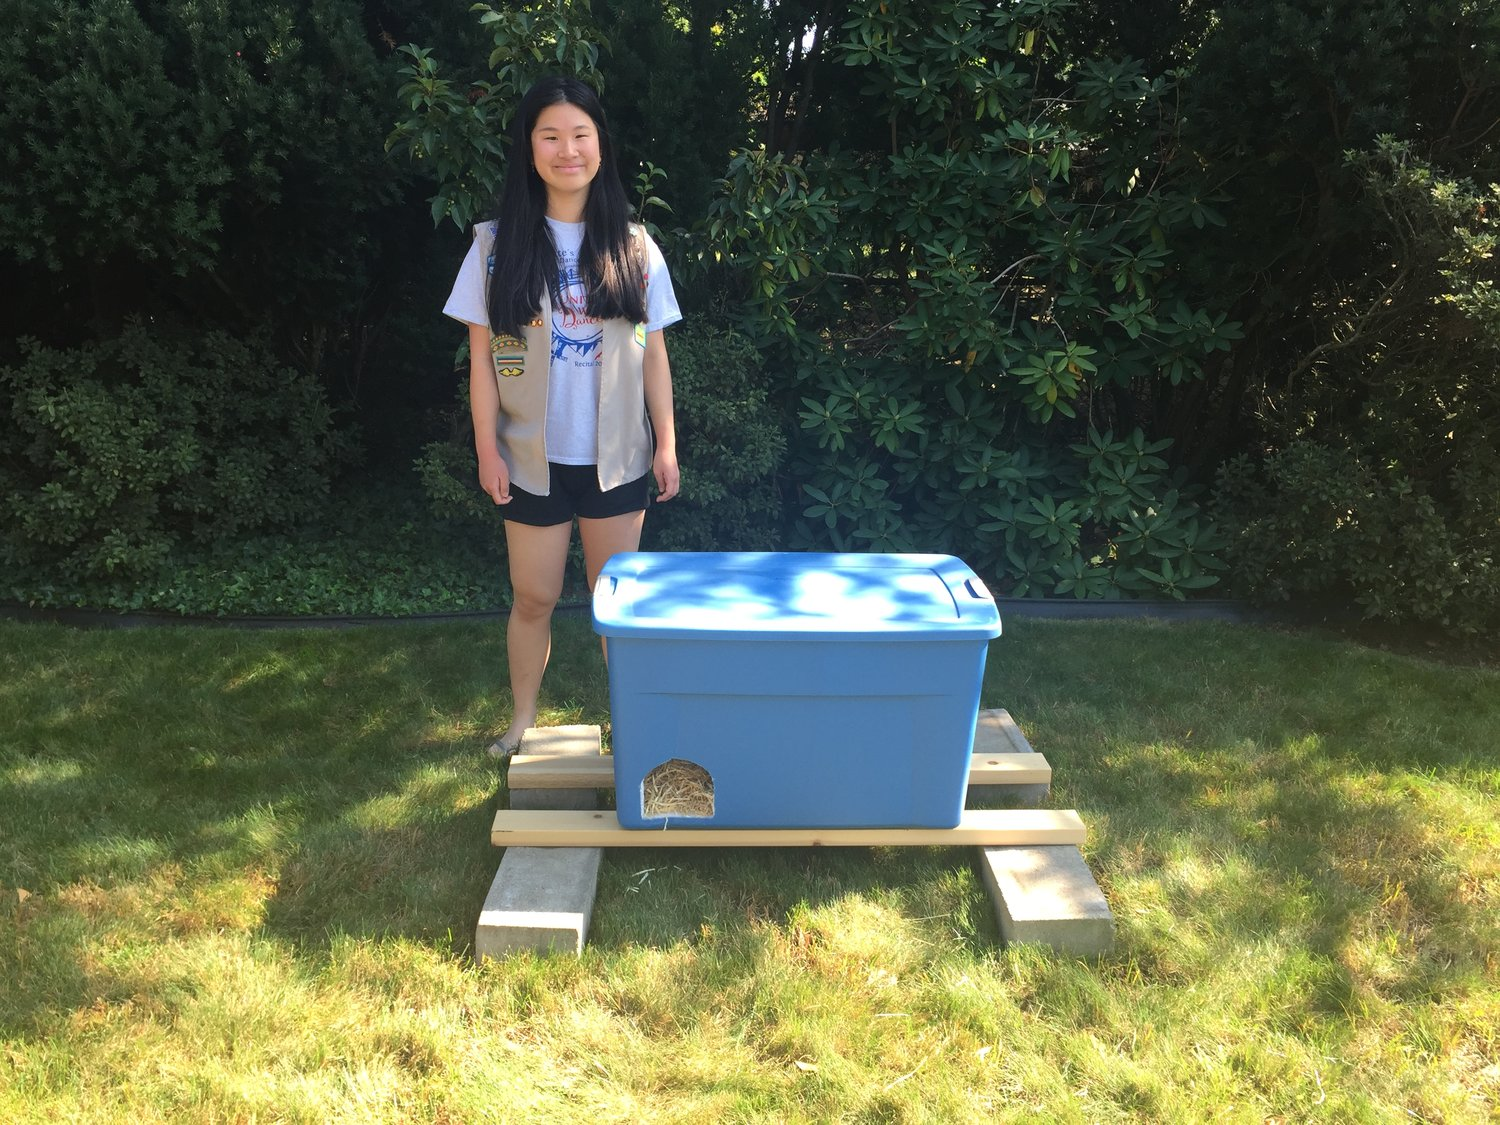 Eighteen-year-old Kayla Leone built six feral cat shelters out of plastic bins, wood and cinder blocks for her Girl Scout Gold Award project.